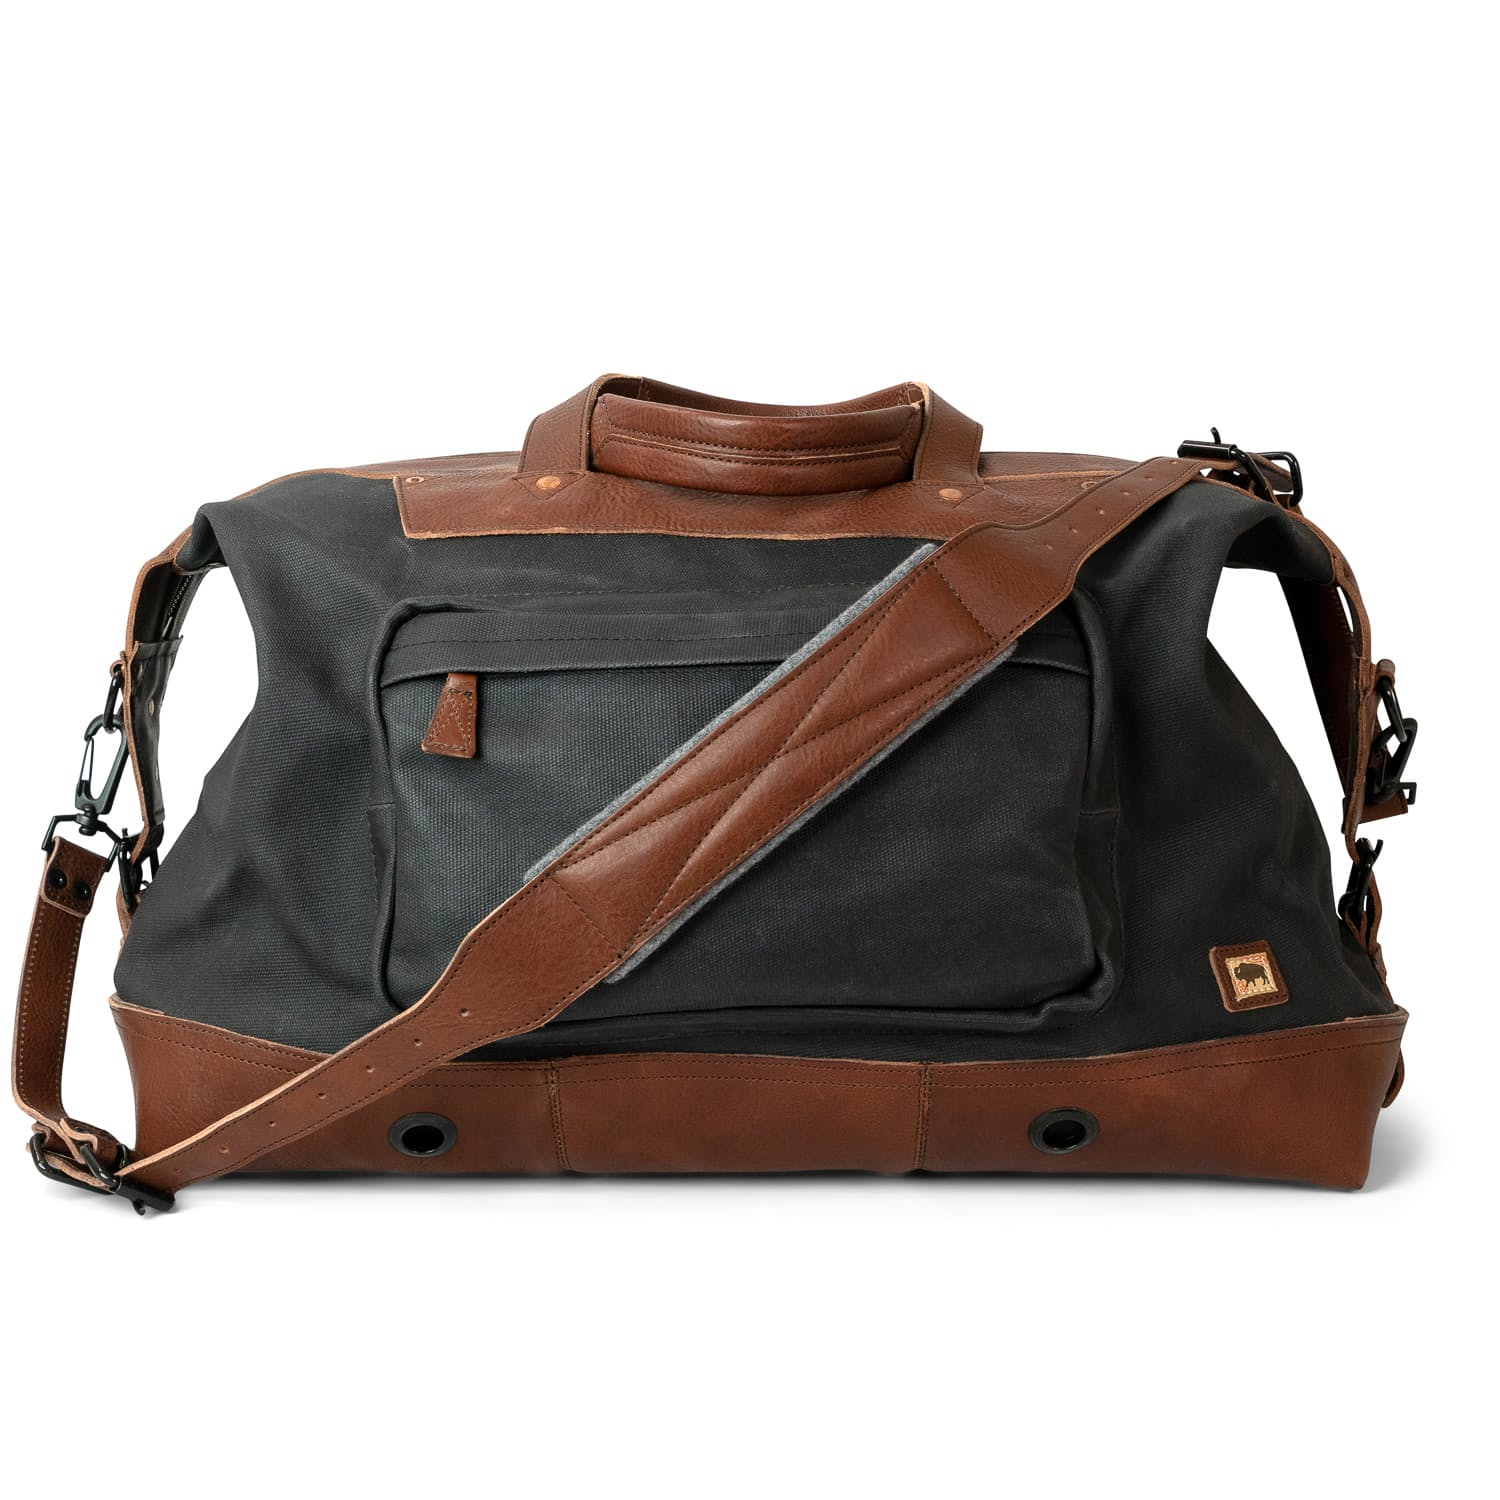 Vaijkrk6c5 buffalo jackson dakota waxed canvas weekender 0 original